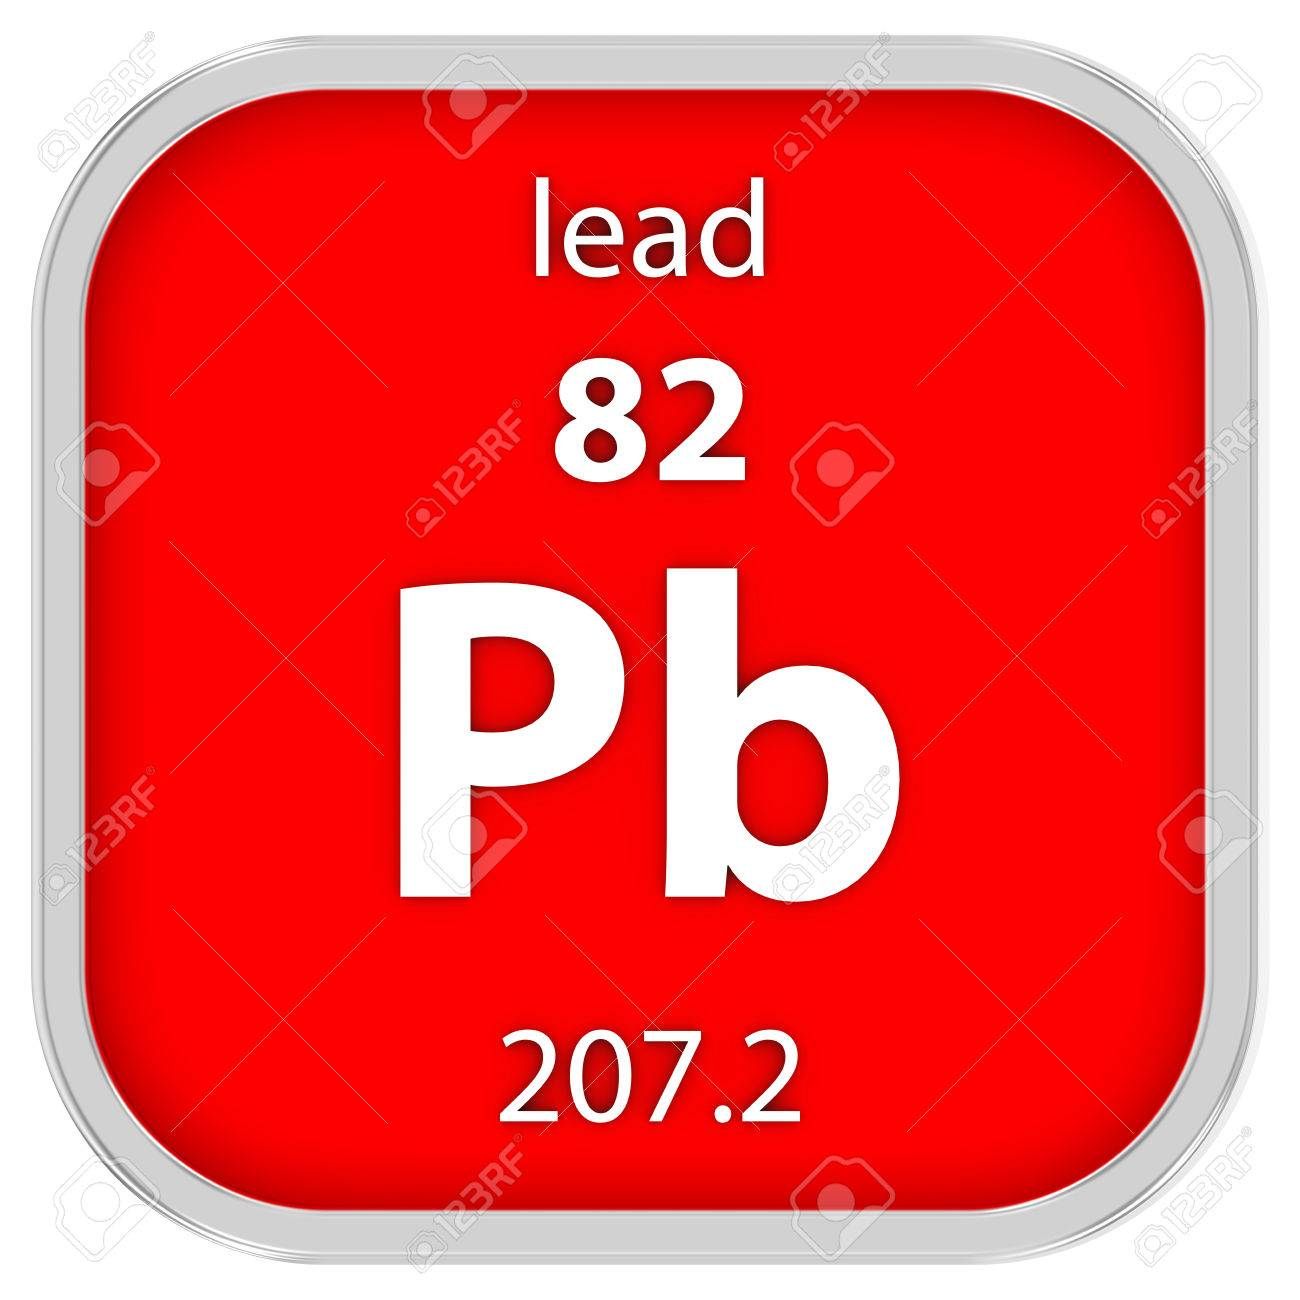 Lead material on the periodic table stock photo picture and royalty lead material on the periodic table stock photo 41158733 urtaz Image collections